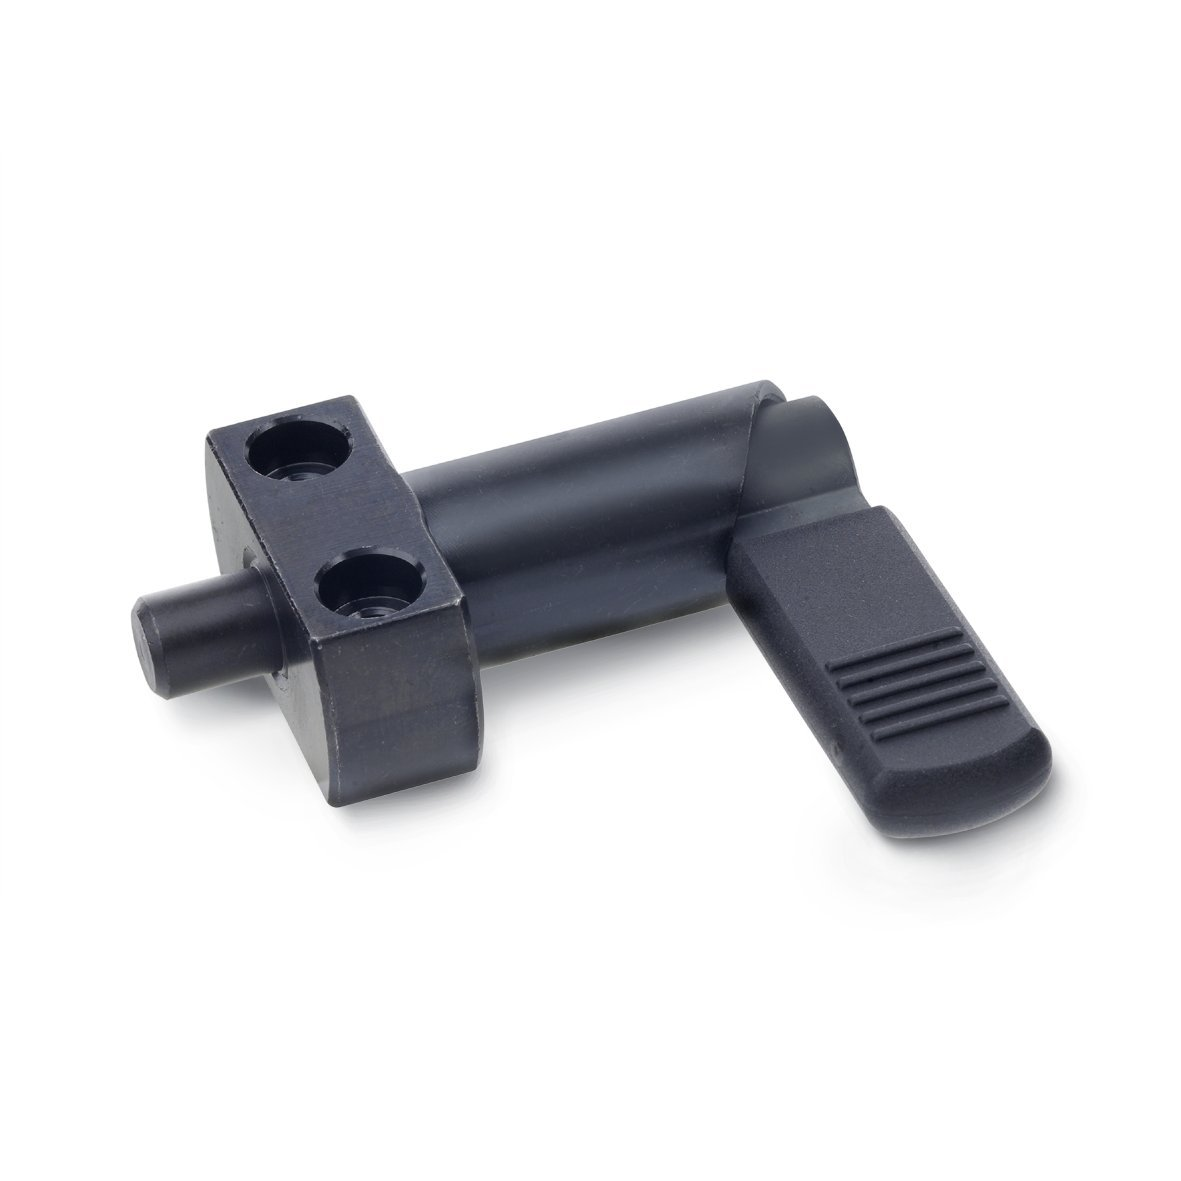 69mm Item Length 8mm Item Diameter JW Winco Inc 8W12P83 GN 612.2 Series Steel Cam Action Indexing Plunger with Mounting Flange with Plastic Sleeve